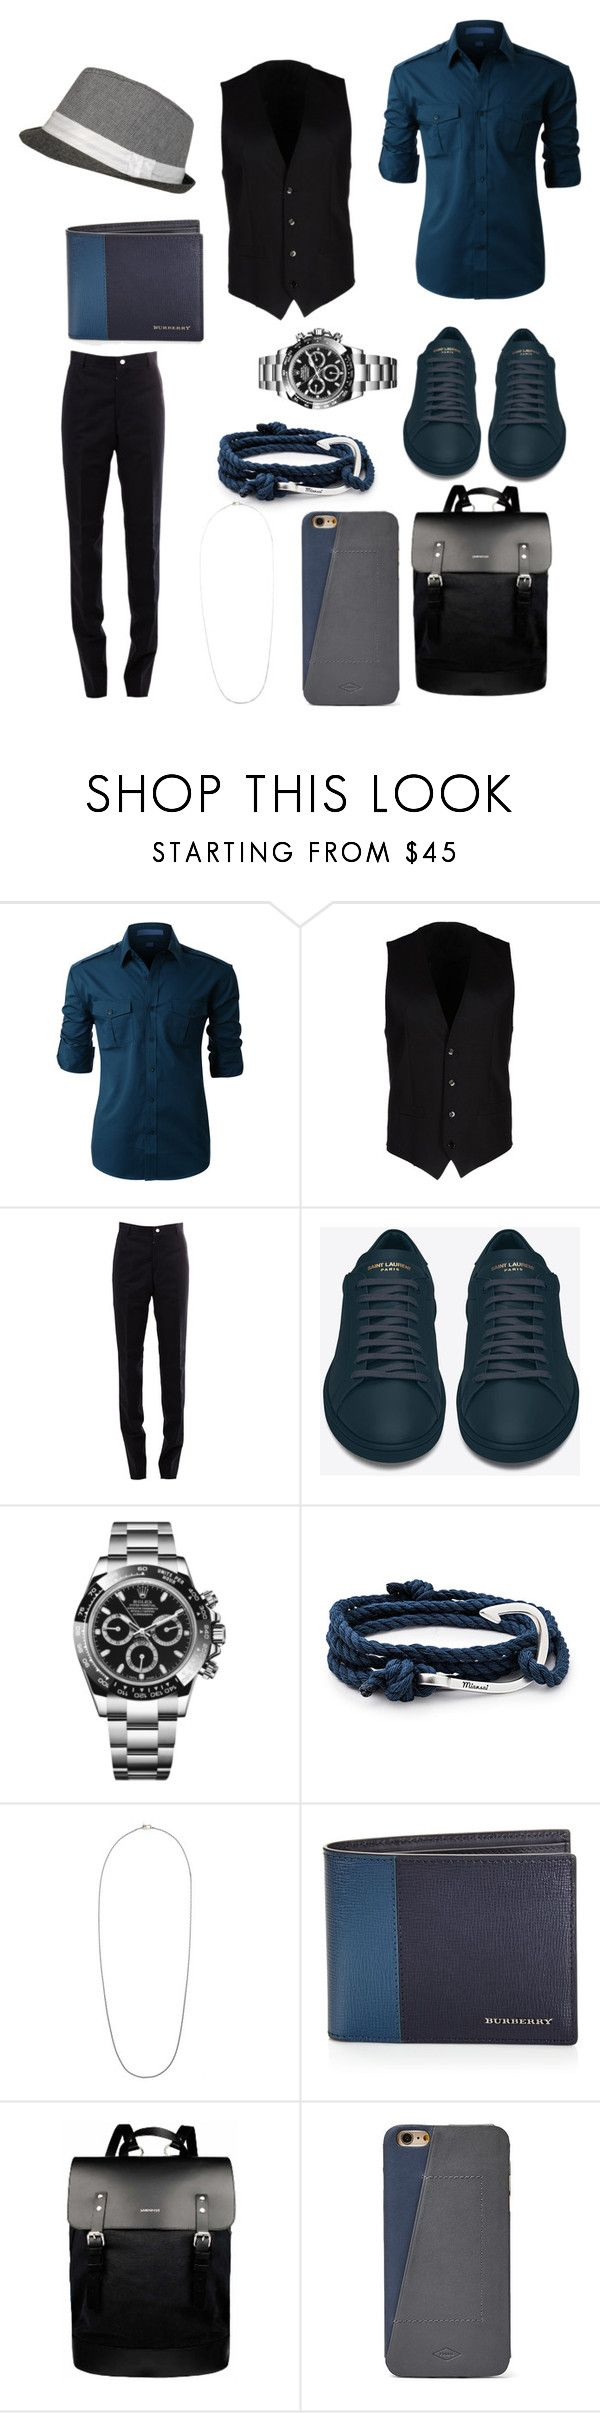 """""""Tyler #3"""" by quiet-galaxies ❤ liked on Polyvore featuring LE3NO, Dolce&Gabbana, Thom Browne, Yves Saint Laurent, Rolex, MIANSAI, Burberry, Sandqvist, FOSSIL and men's fashion"""